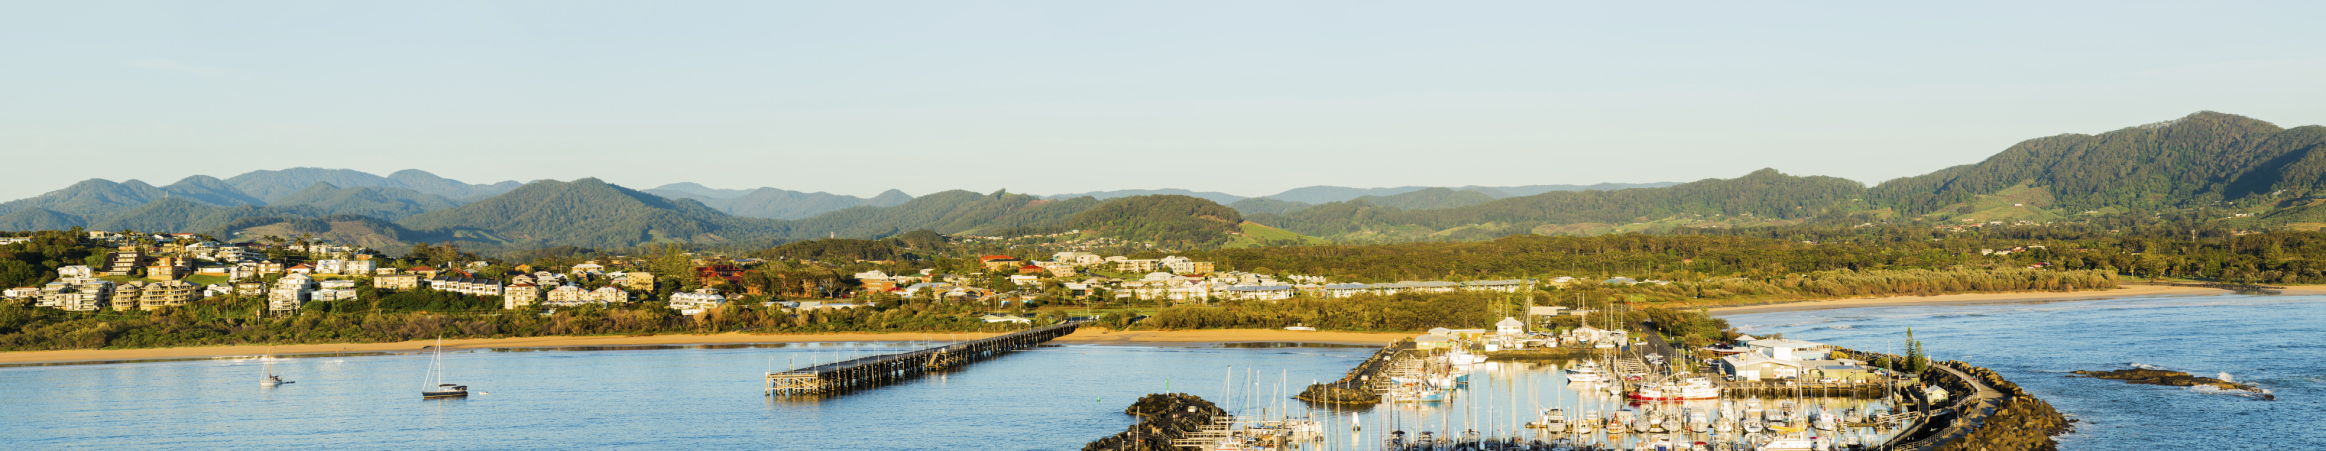 Coffs Harbour - NSW